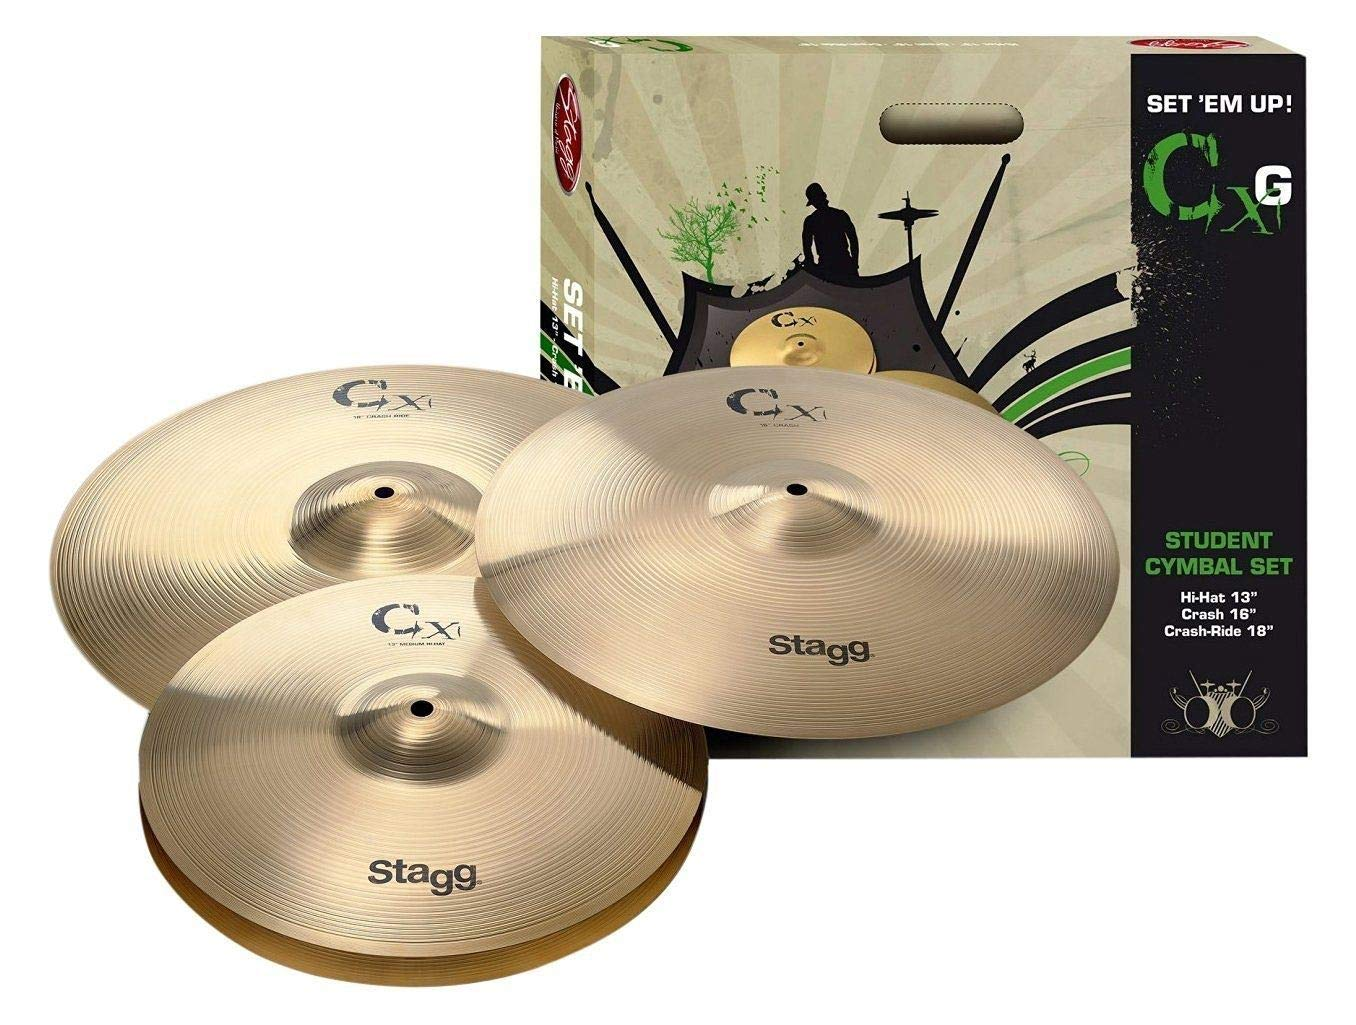 Stagg CXG-SET Brass Starter Cymbal Set with 13-Inch Hi-Hats, 16-Inch Crash and 18-Inch Crash Ride Cymbal by Stagg